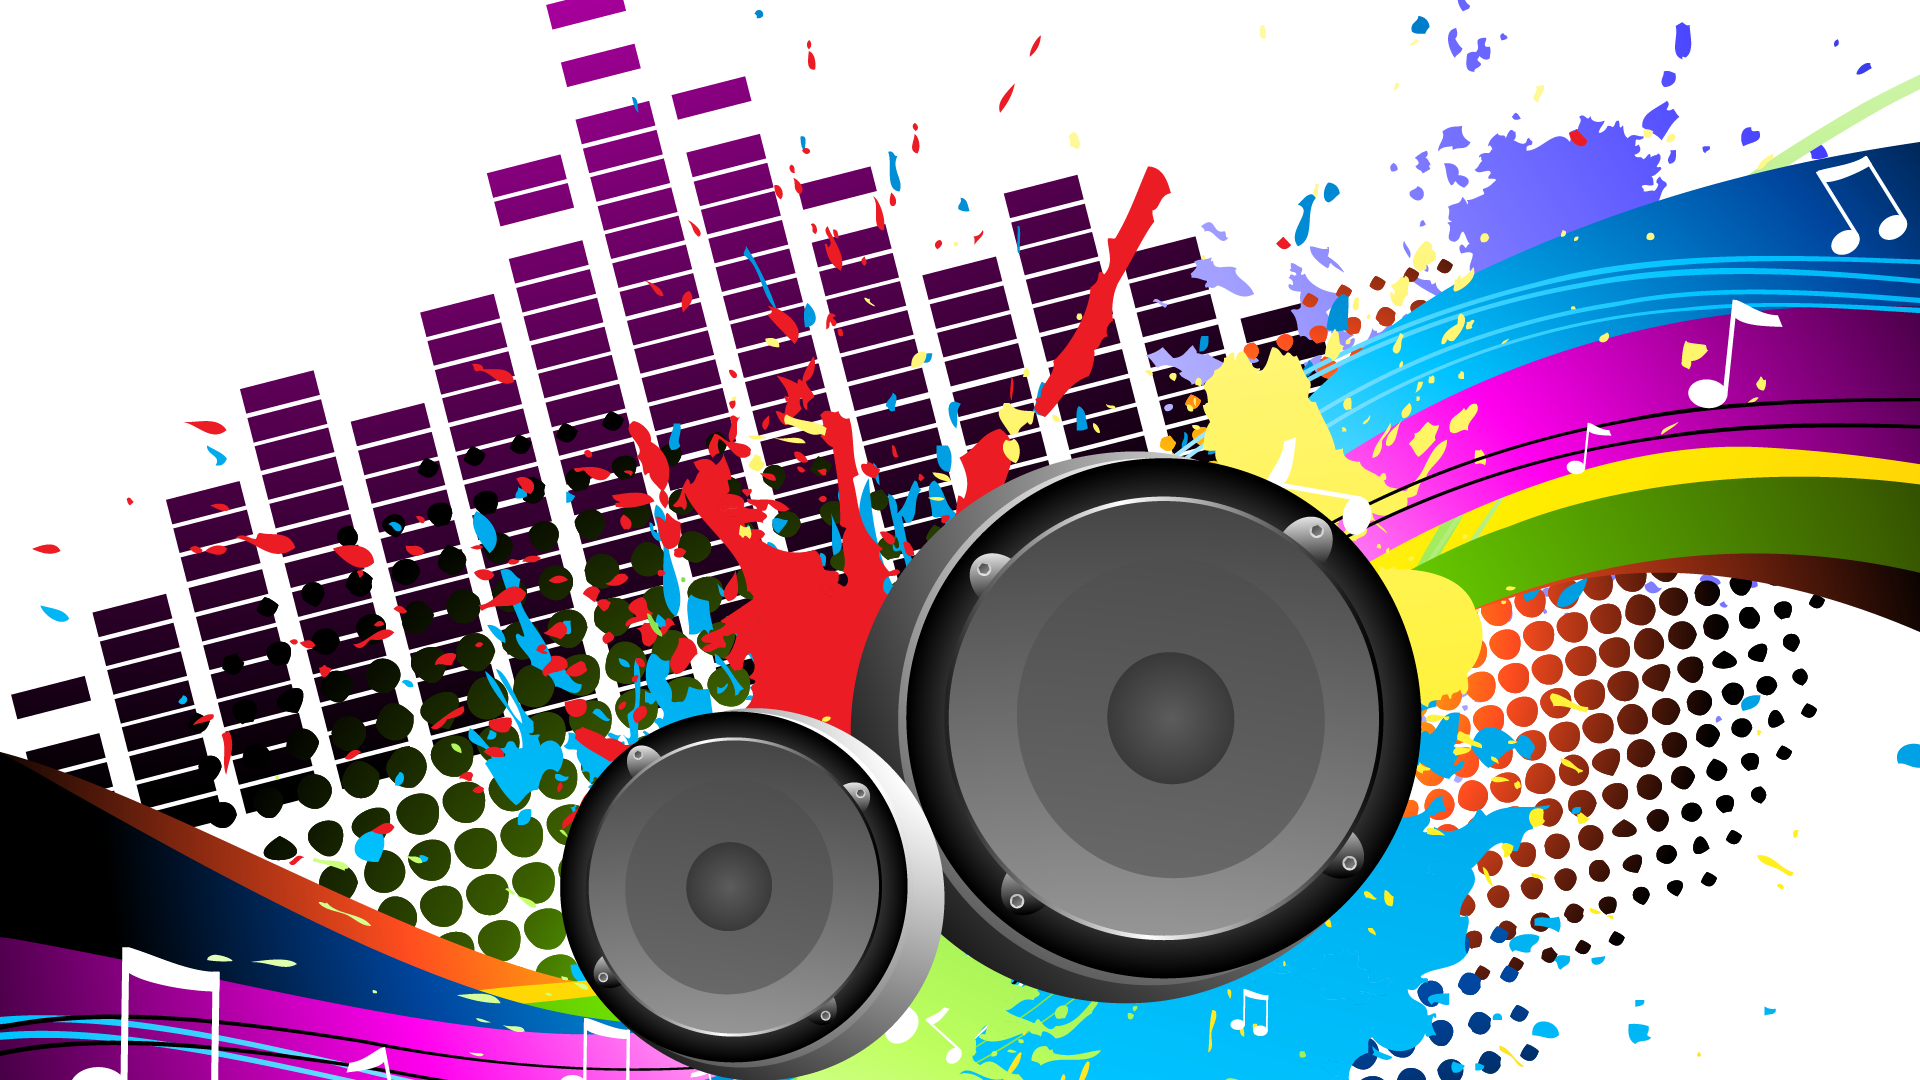 Music png images. Transparent pluspng pluspngcom musicpng